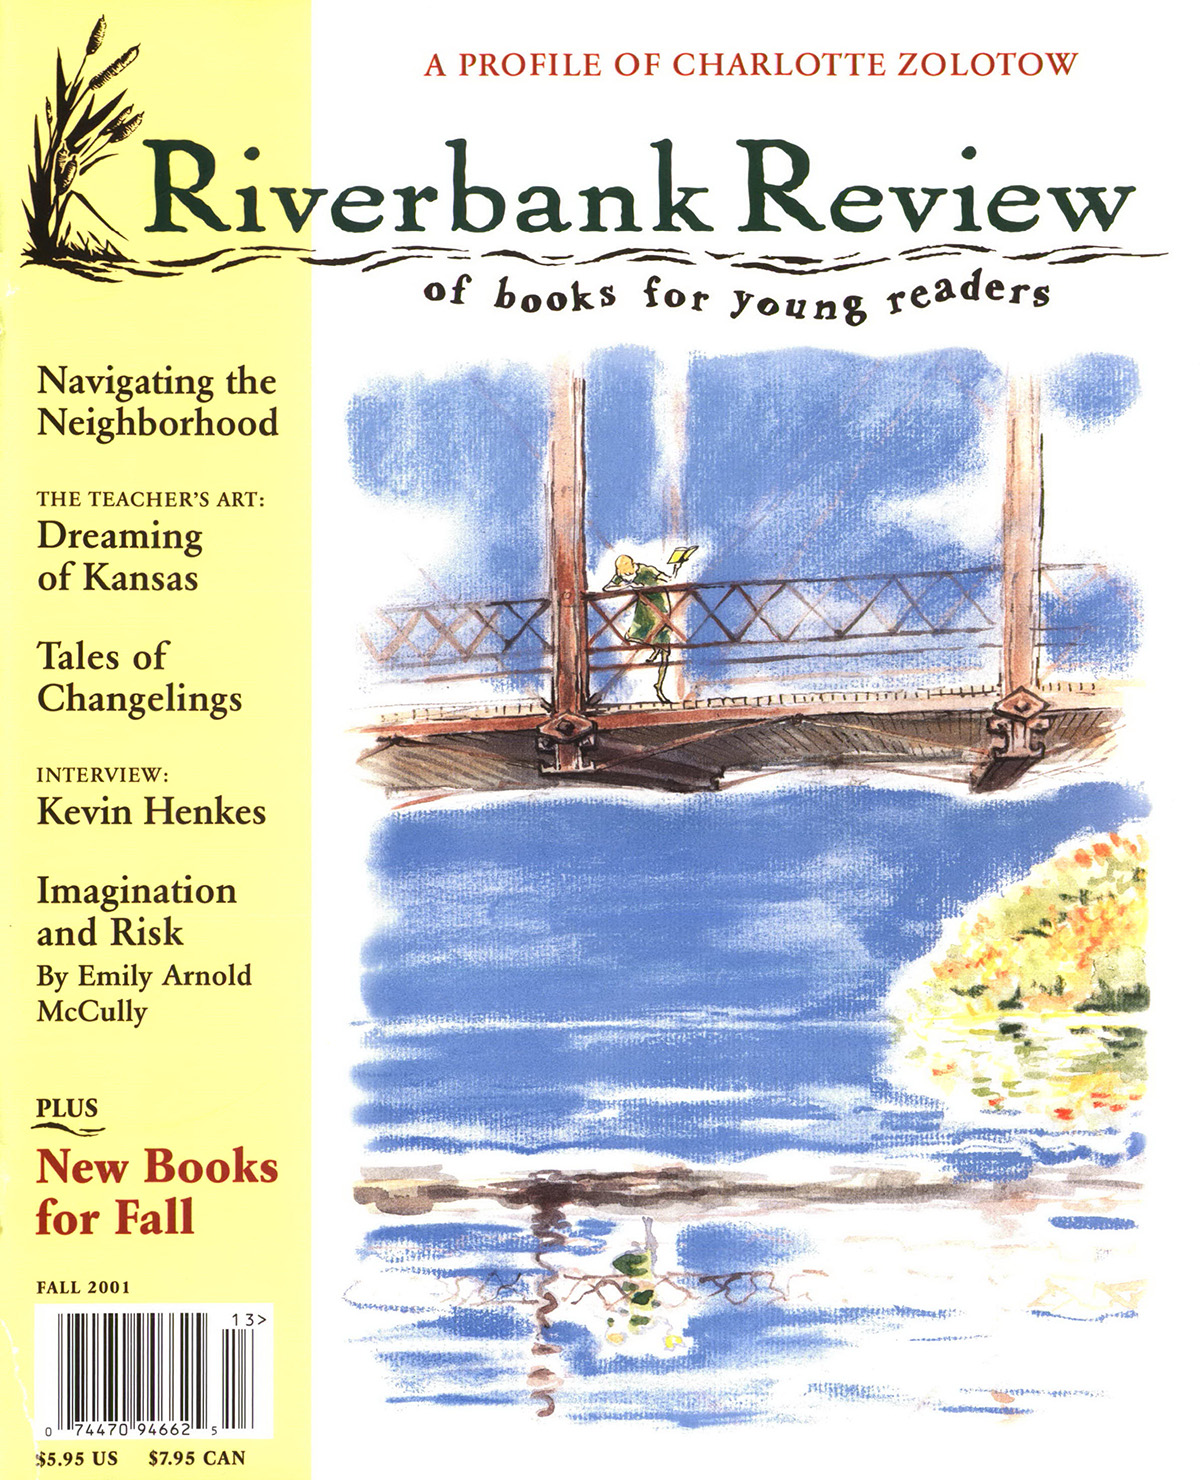 Fall 2001: David Small cover